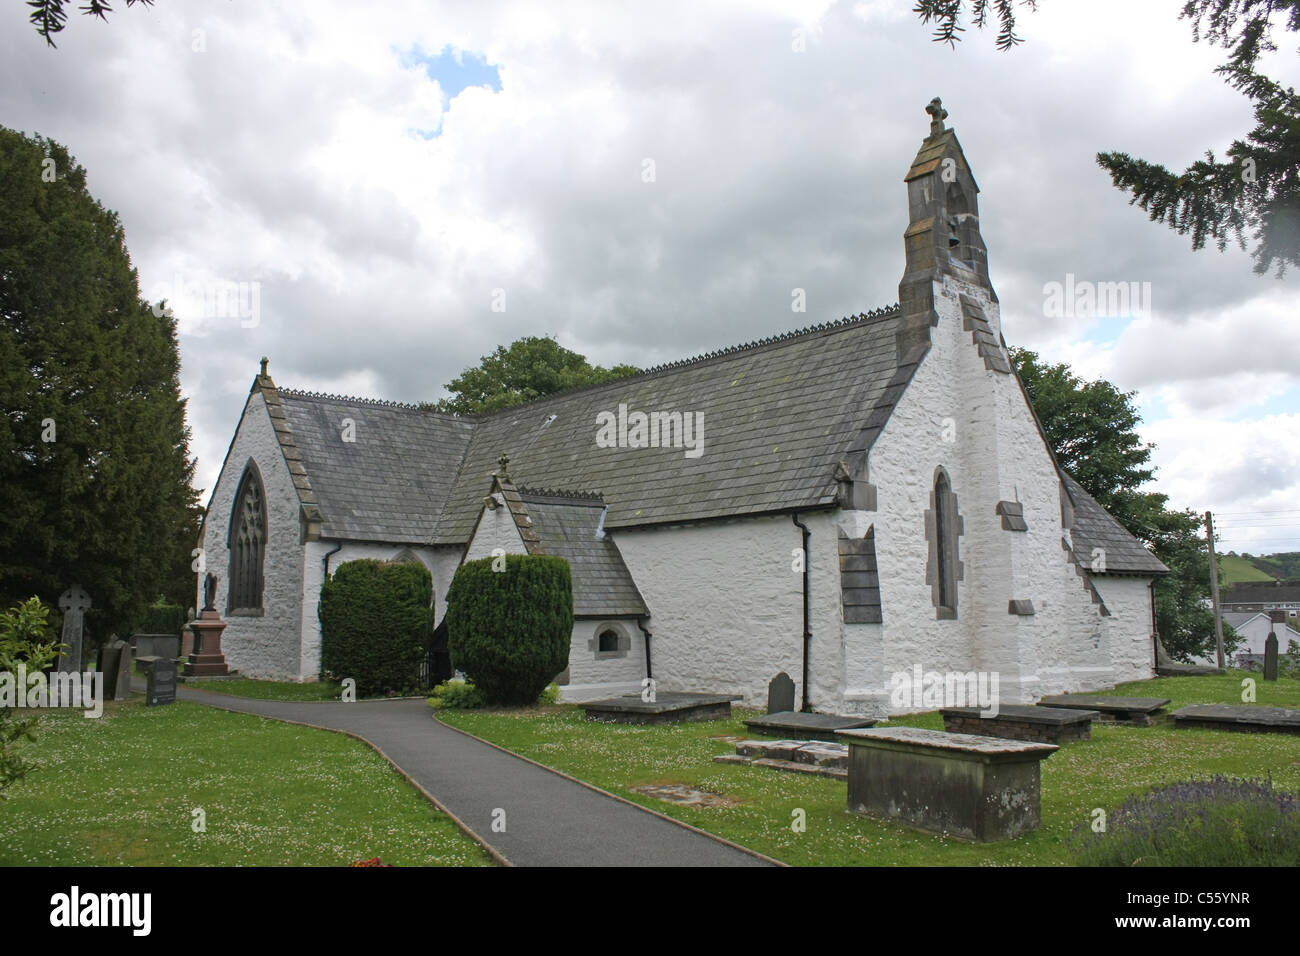 St Digain's Church has an ancient yew in its grounds - Stock Image